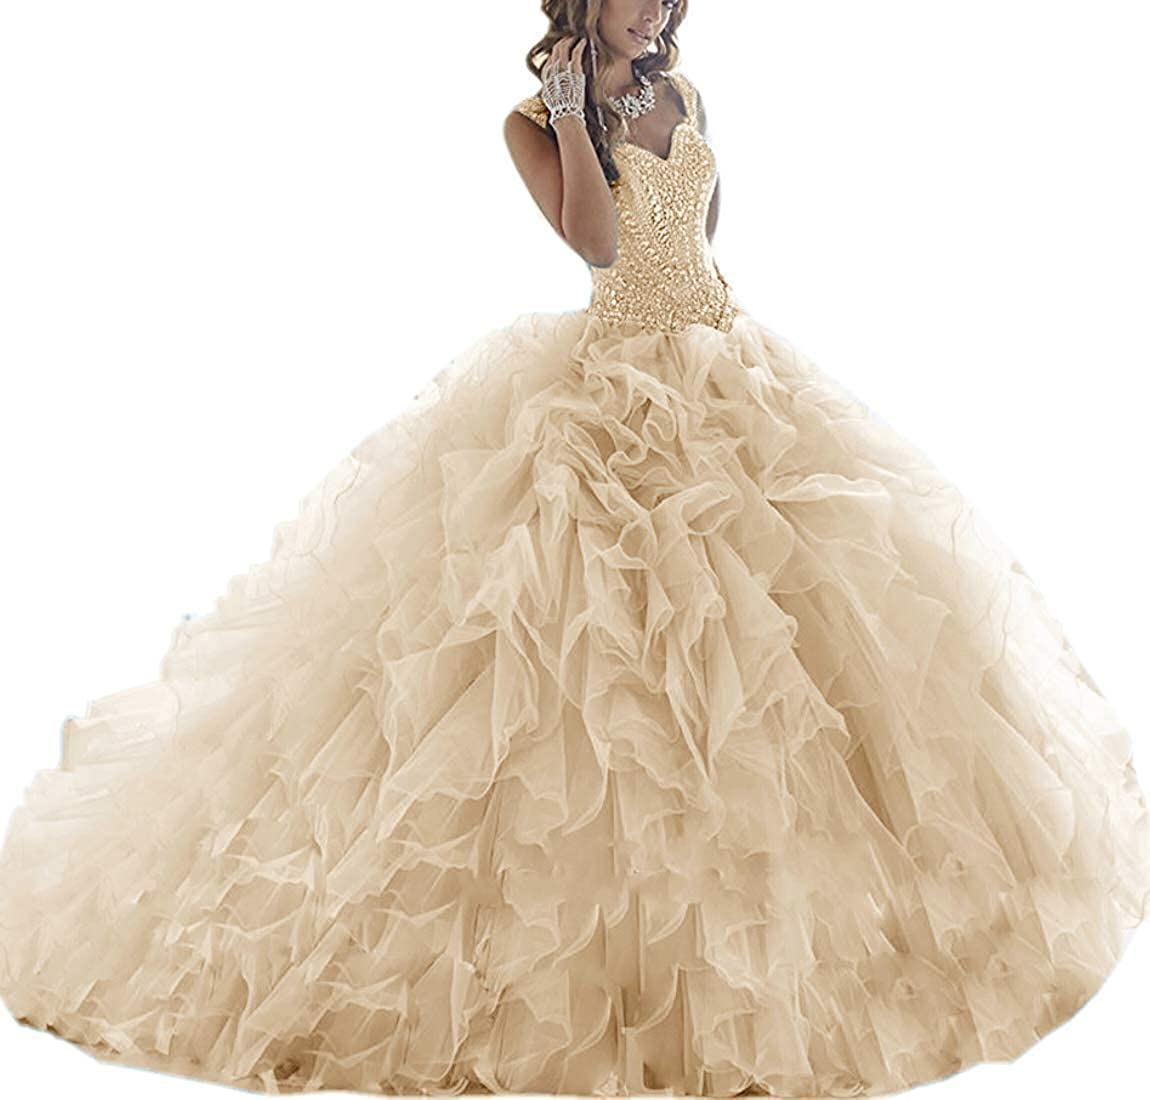 Champagne ASBridal Quinceanera Dresses Long Prom Party Dress Sweet 16 Crystals Beads Formal Ball Gowns Orangza